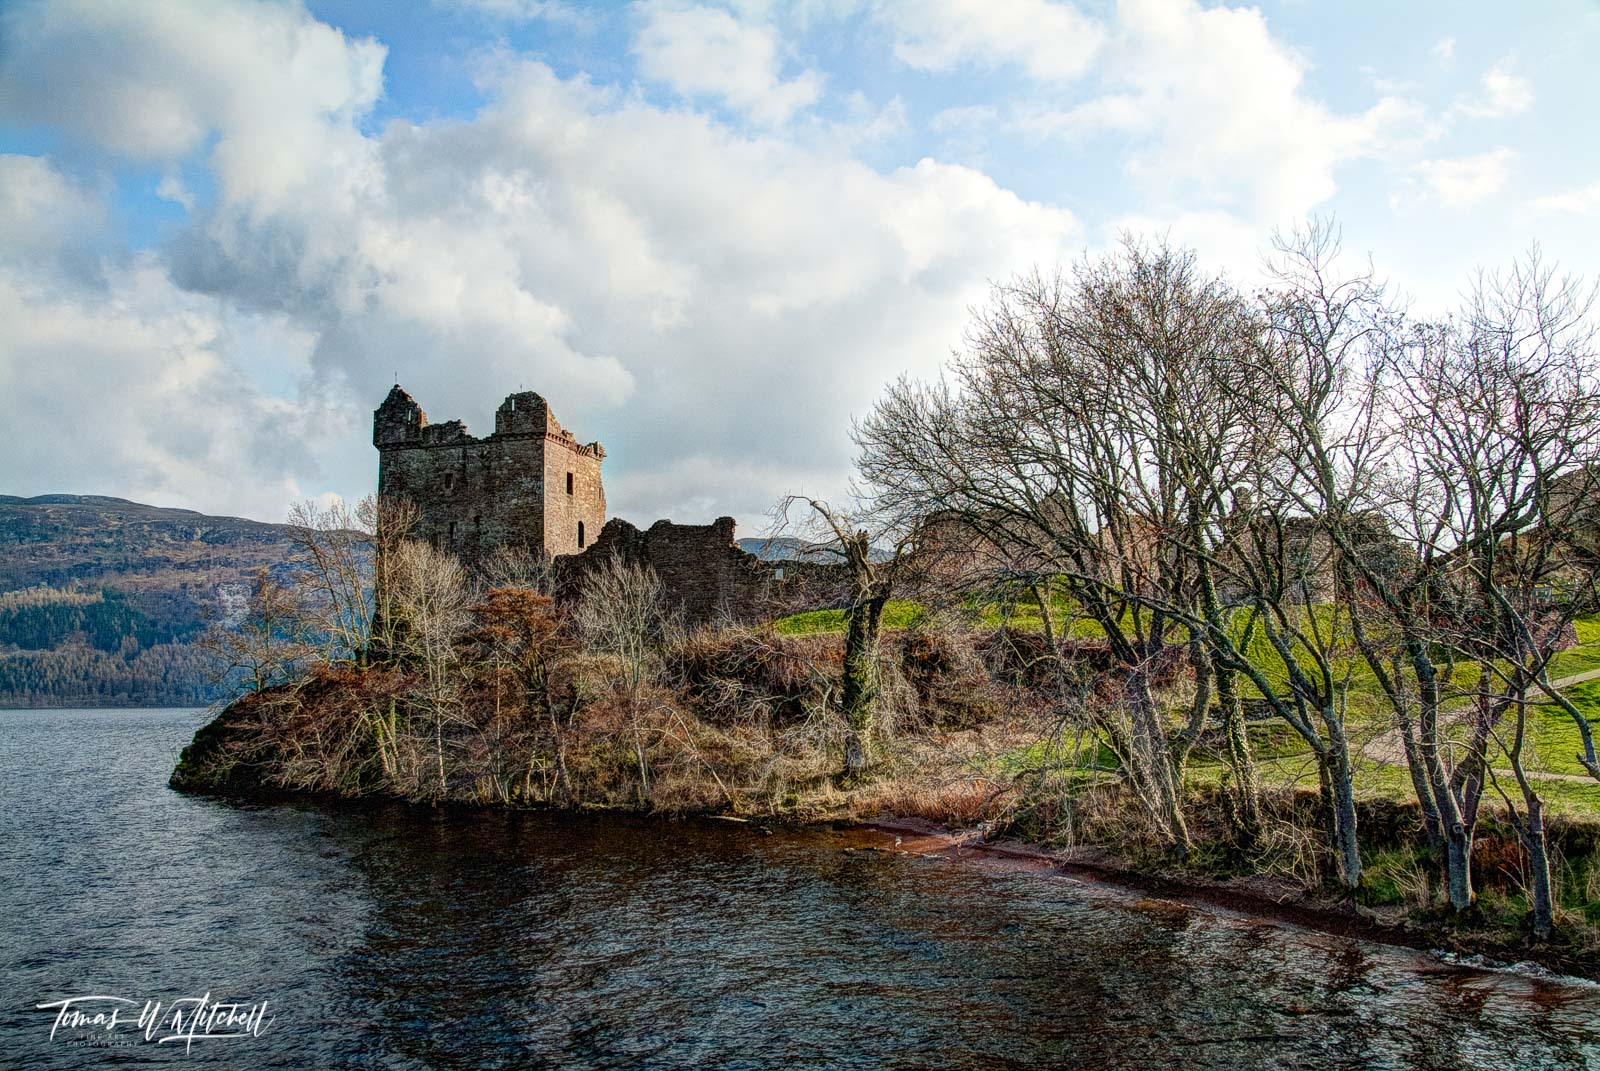 limited edition, museum grade, fine art, prints, loch ness, urquhart castle, jacabite cruise, ship, water, castle, tower, grant tower, trees, spring, cloudy sky, blue, sun, clouds, photograph, photo